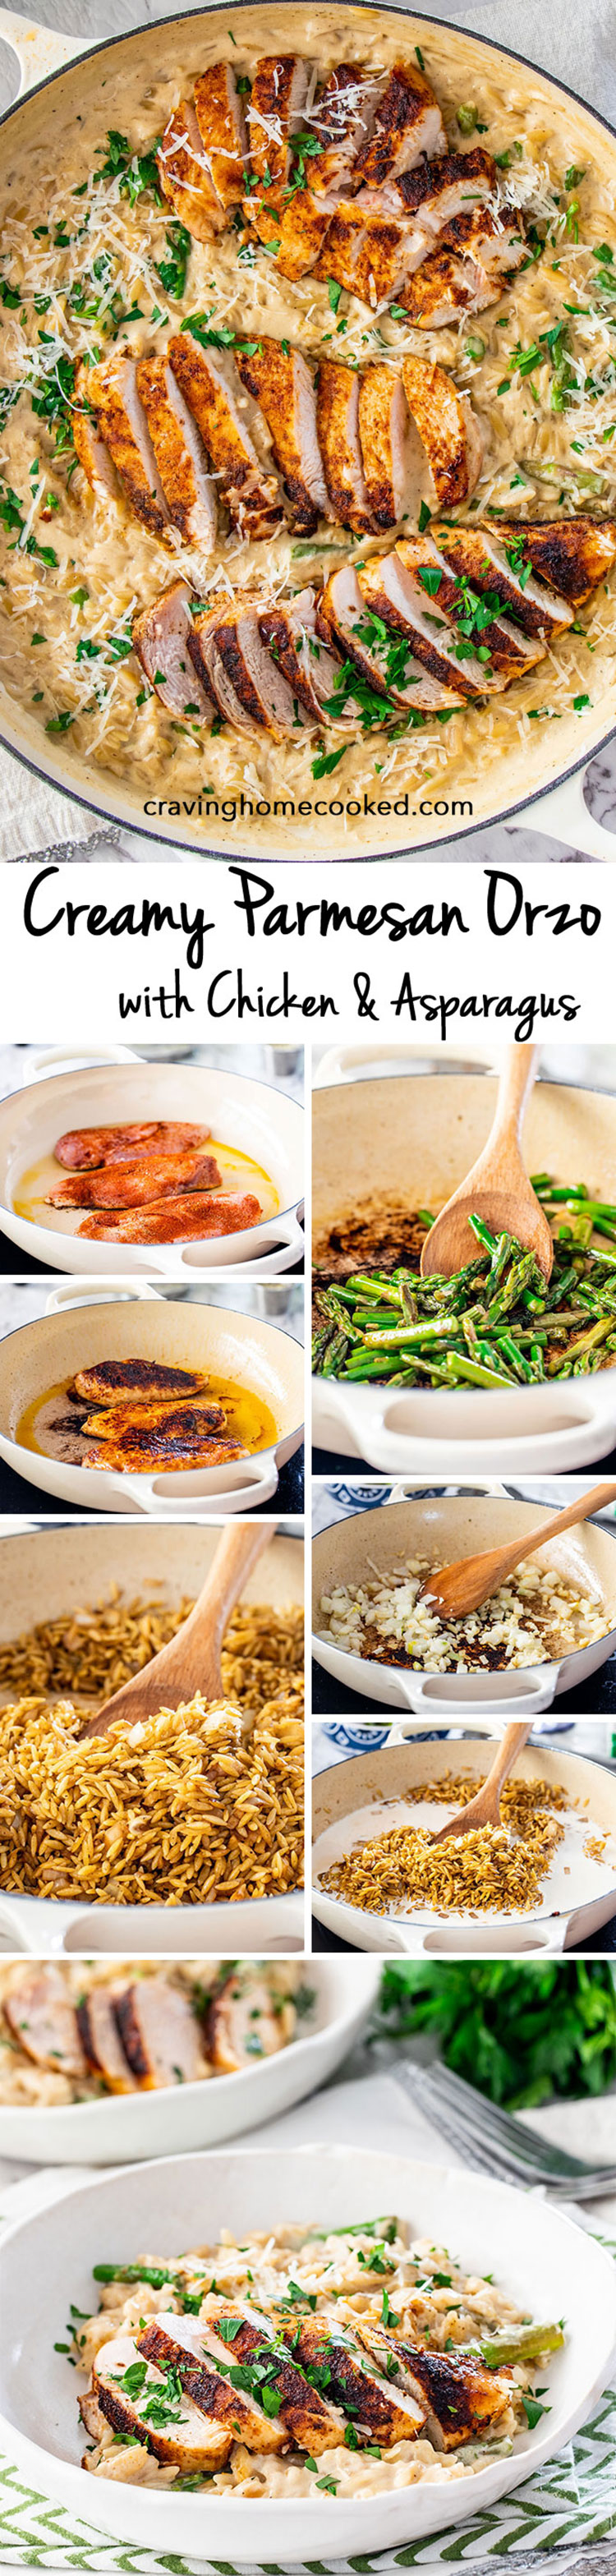 Quick and delicious Creamy Parmesan Orzo with Chicken and Asparagus that can be on your dinner table in only 30 minutes! Cheesy, creamy, delicious goodness! #parmesanorzo #chicken #30minutemeals